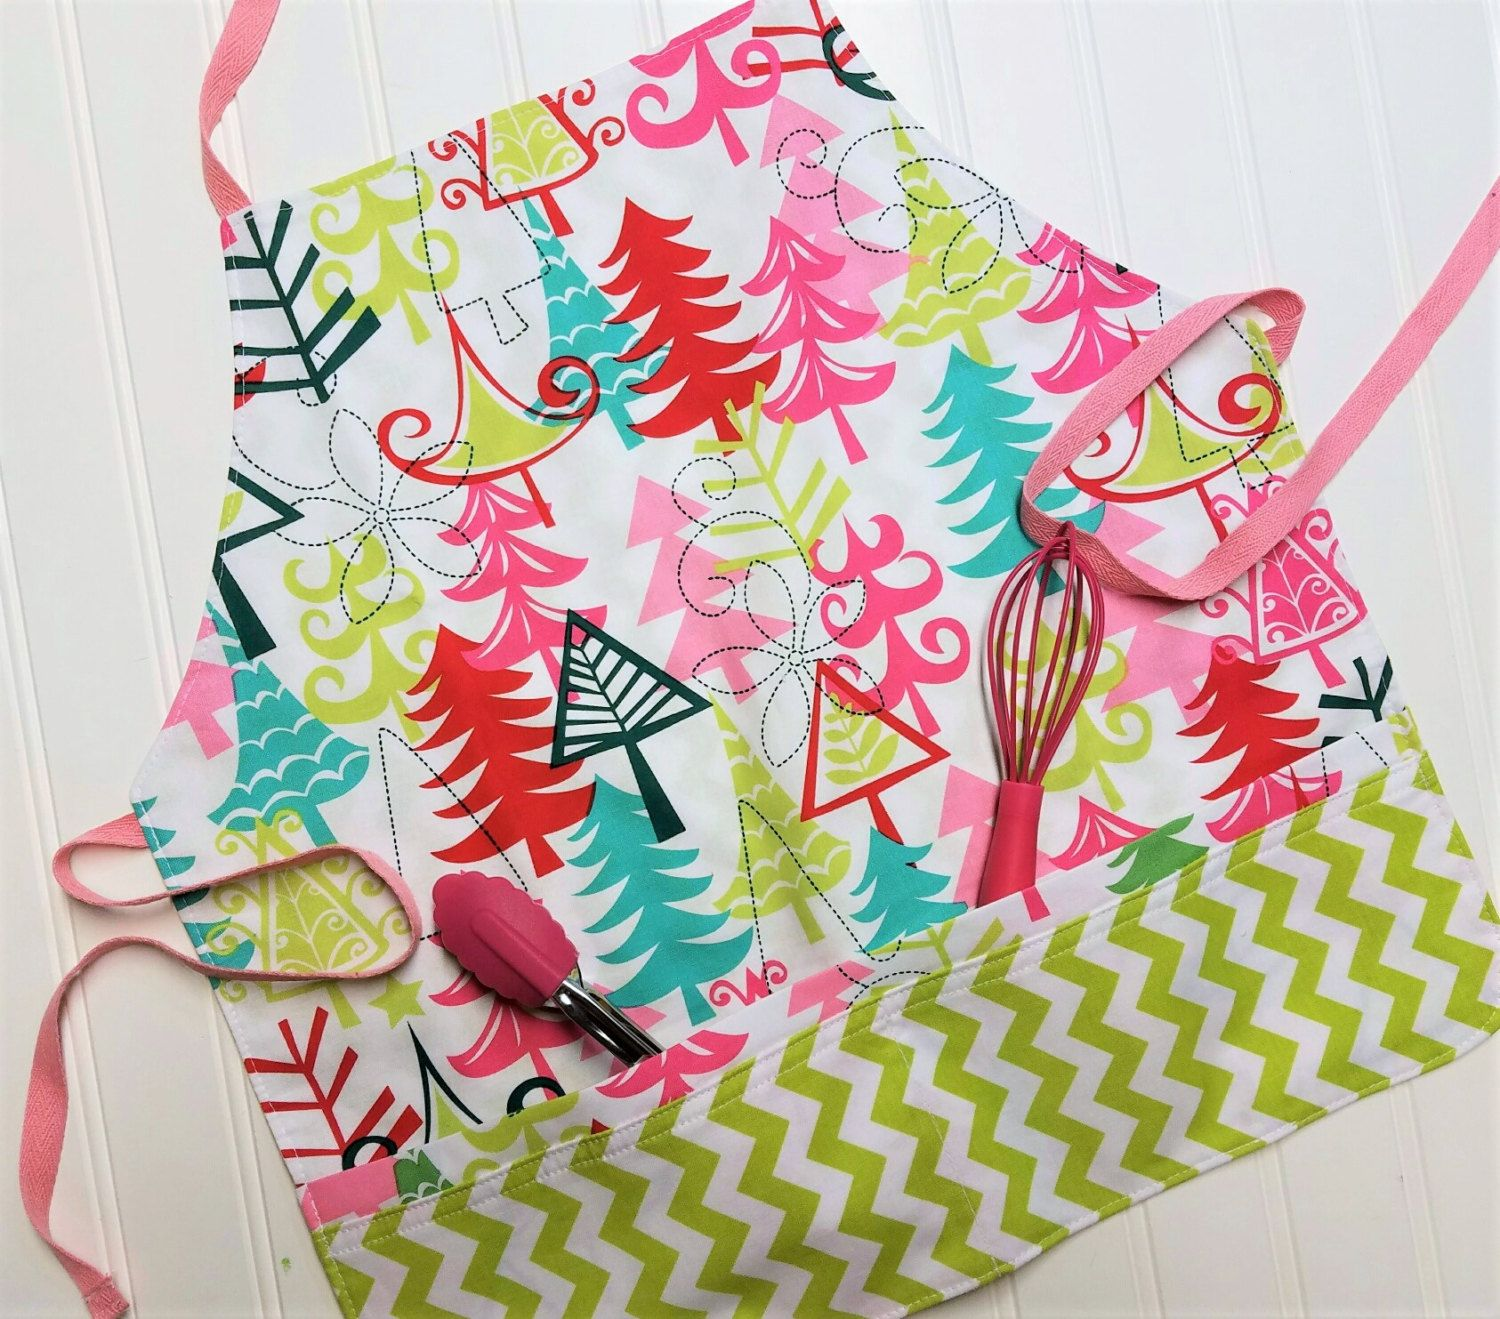 Kids-Aprons-Pink-Lime-Trees-Christmas-Chef-Art-Cooking-Kitchen-Baking-Play-Dough-Garden-Apron-Smocks-Holiday-Birthday-Toddler-Gifts by tanjadlyn on Etsy